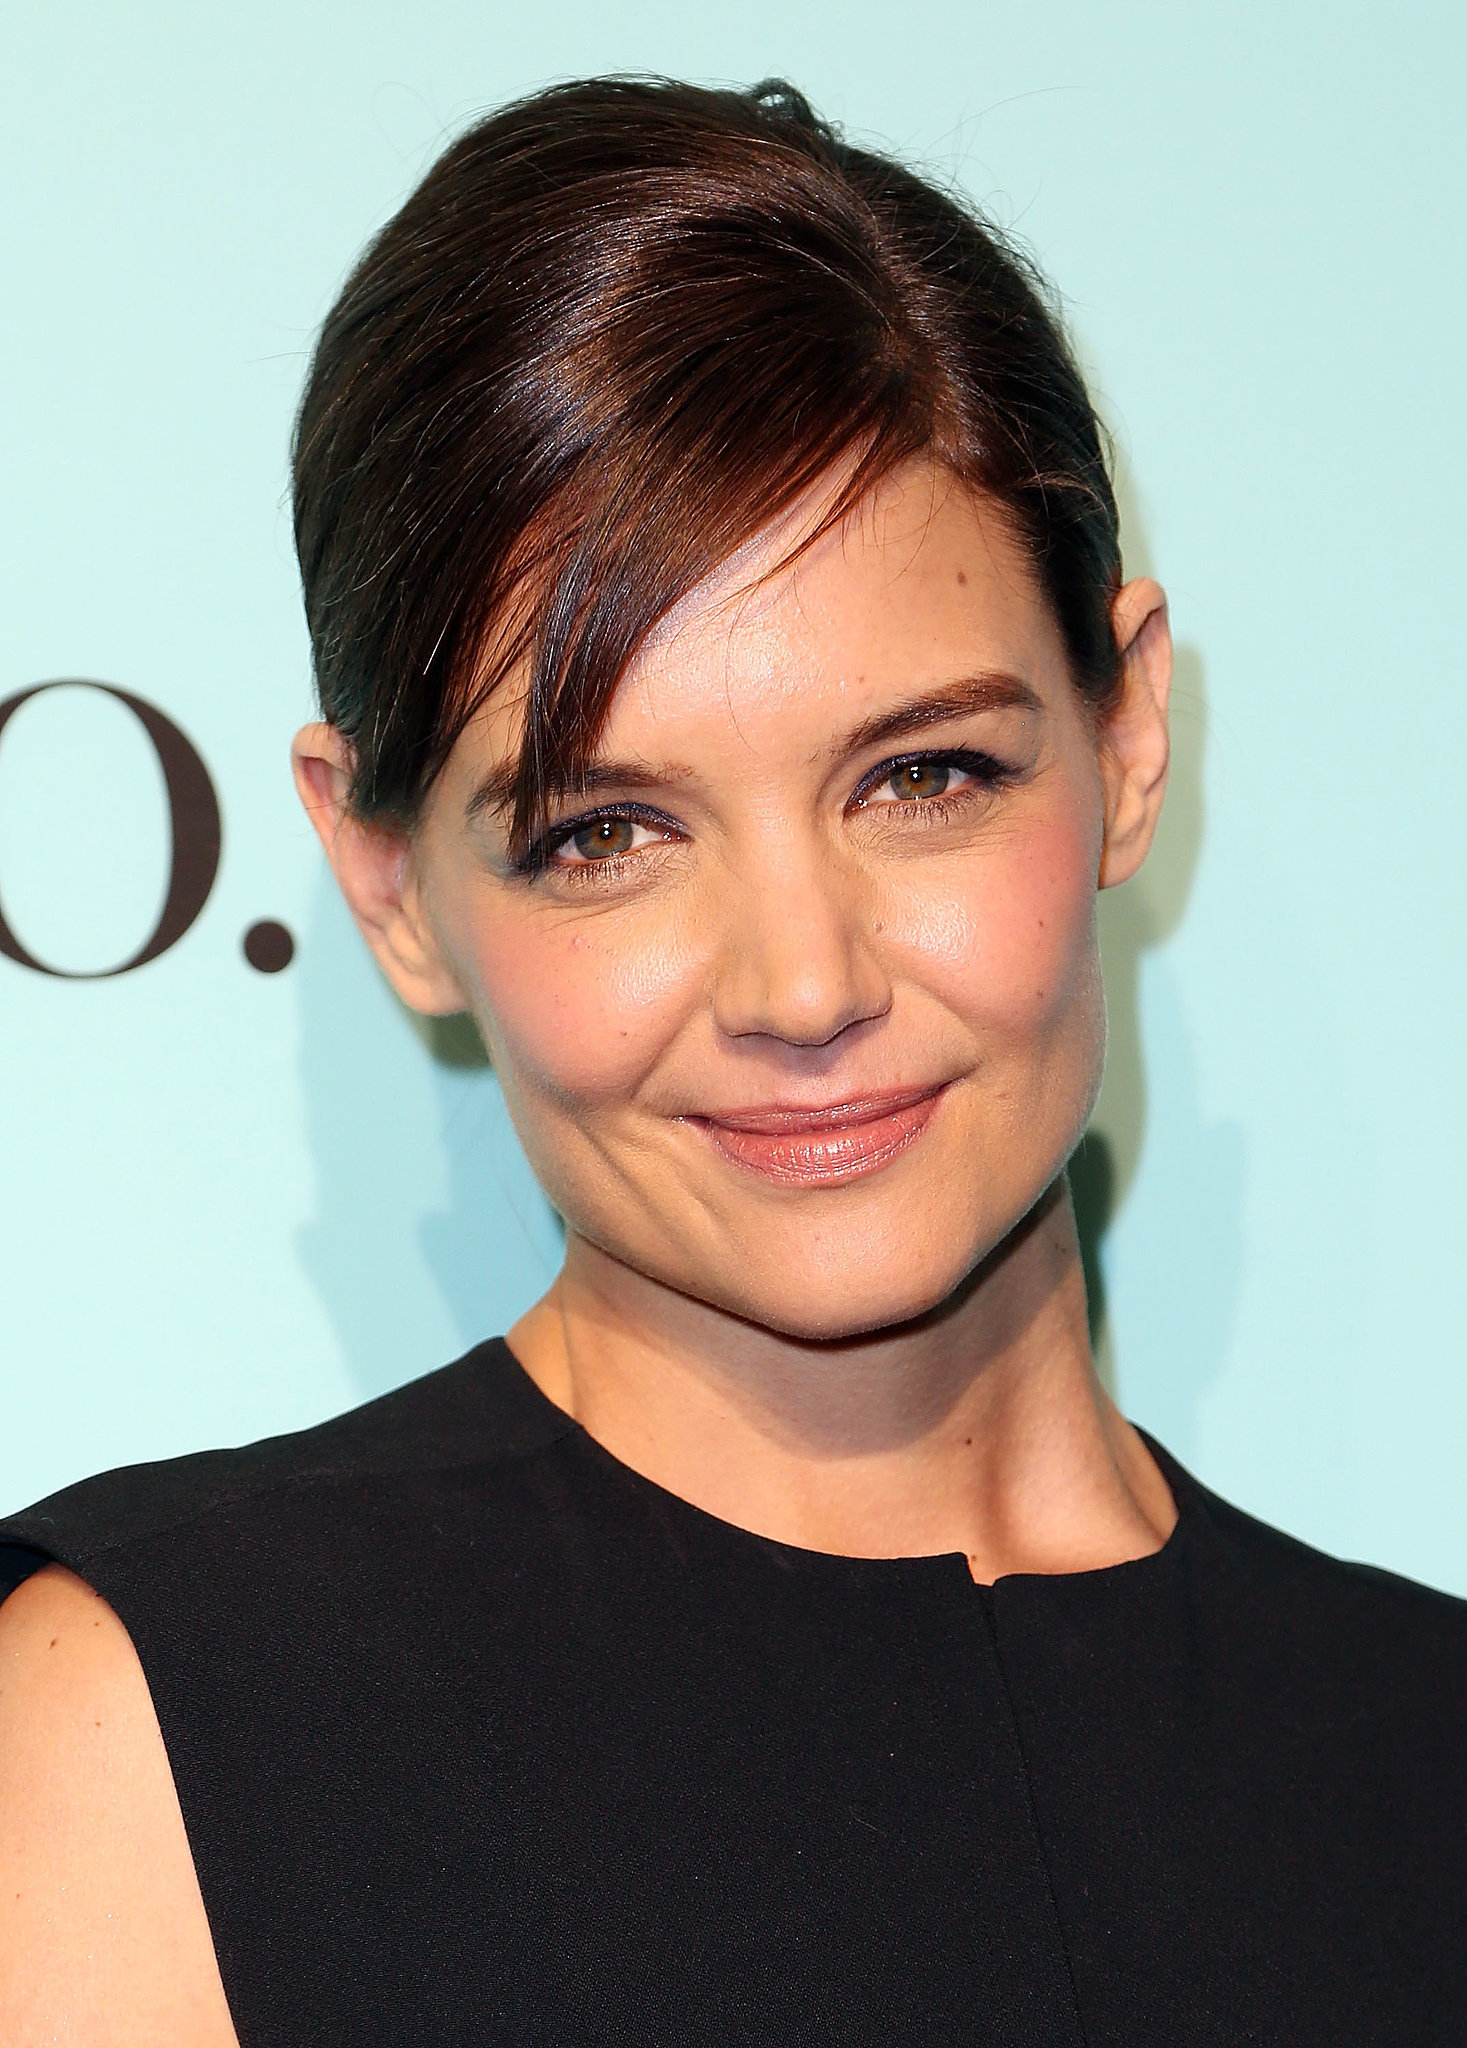 Even Katie Holmes and Jessica Biel Can't Resist a Good Selfie